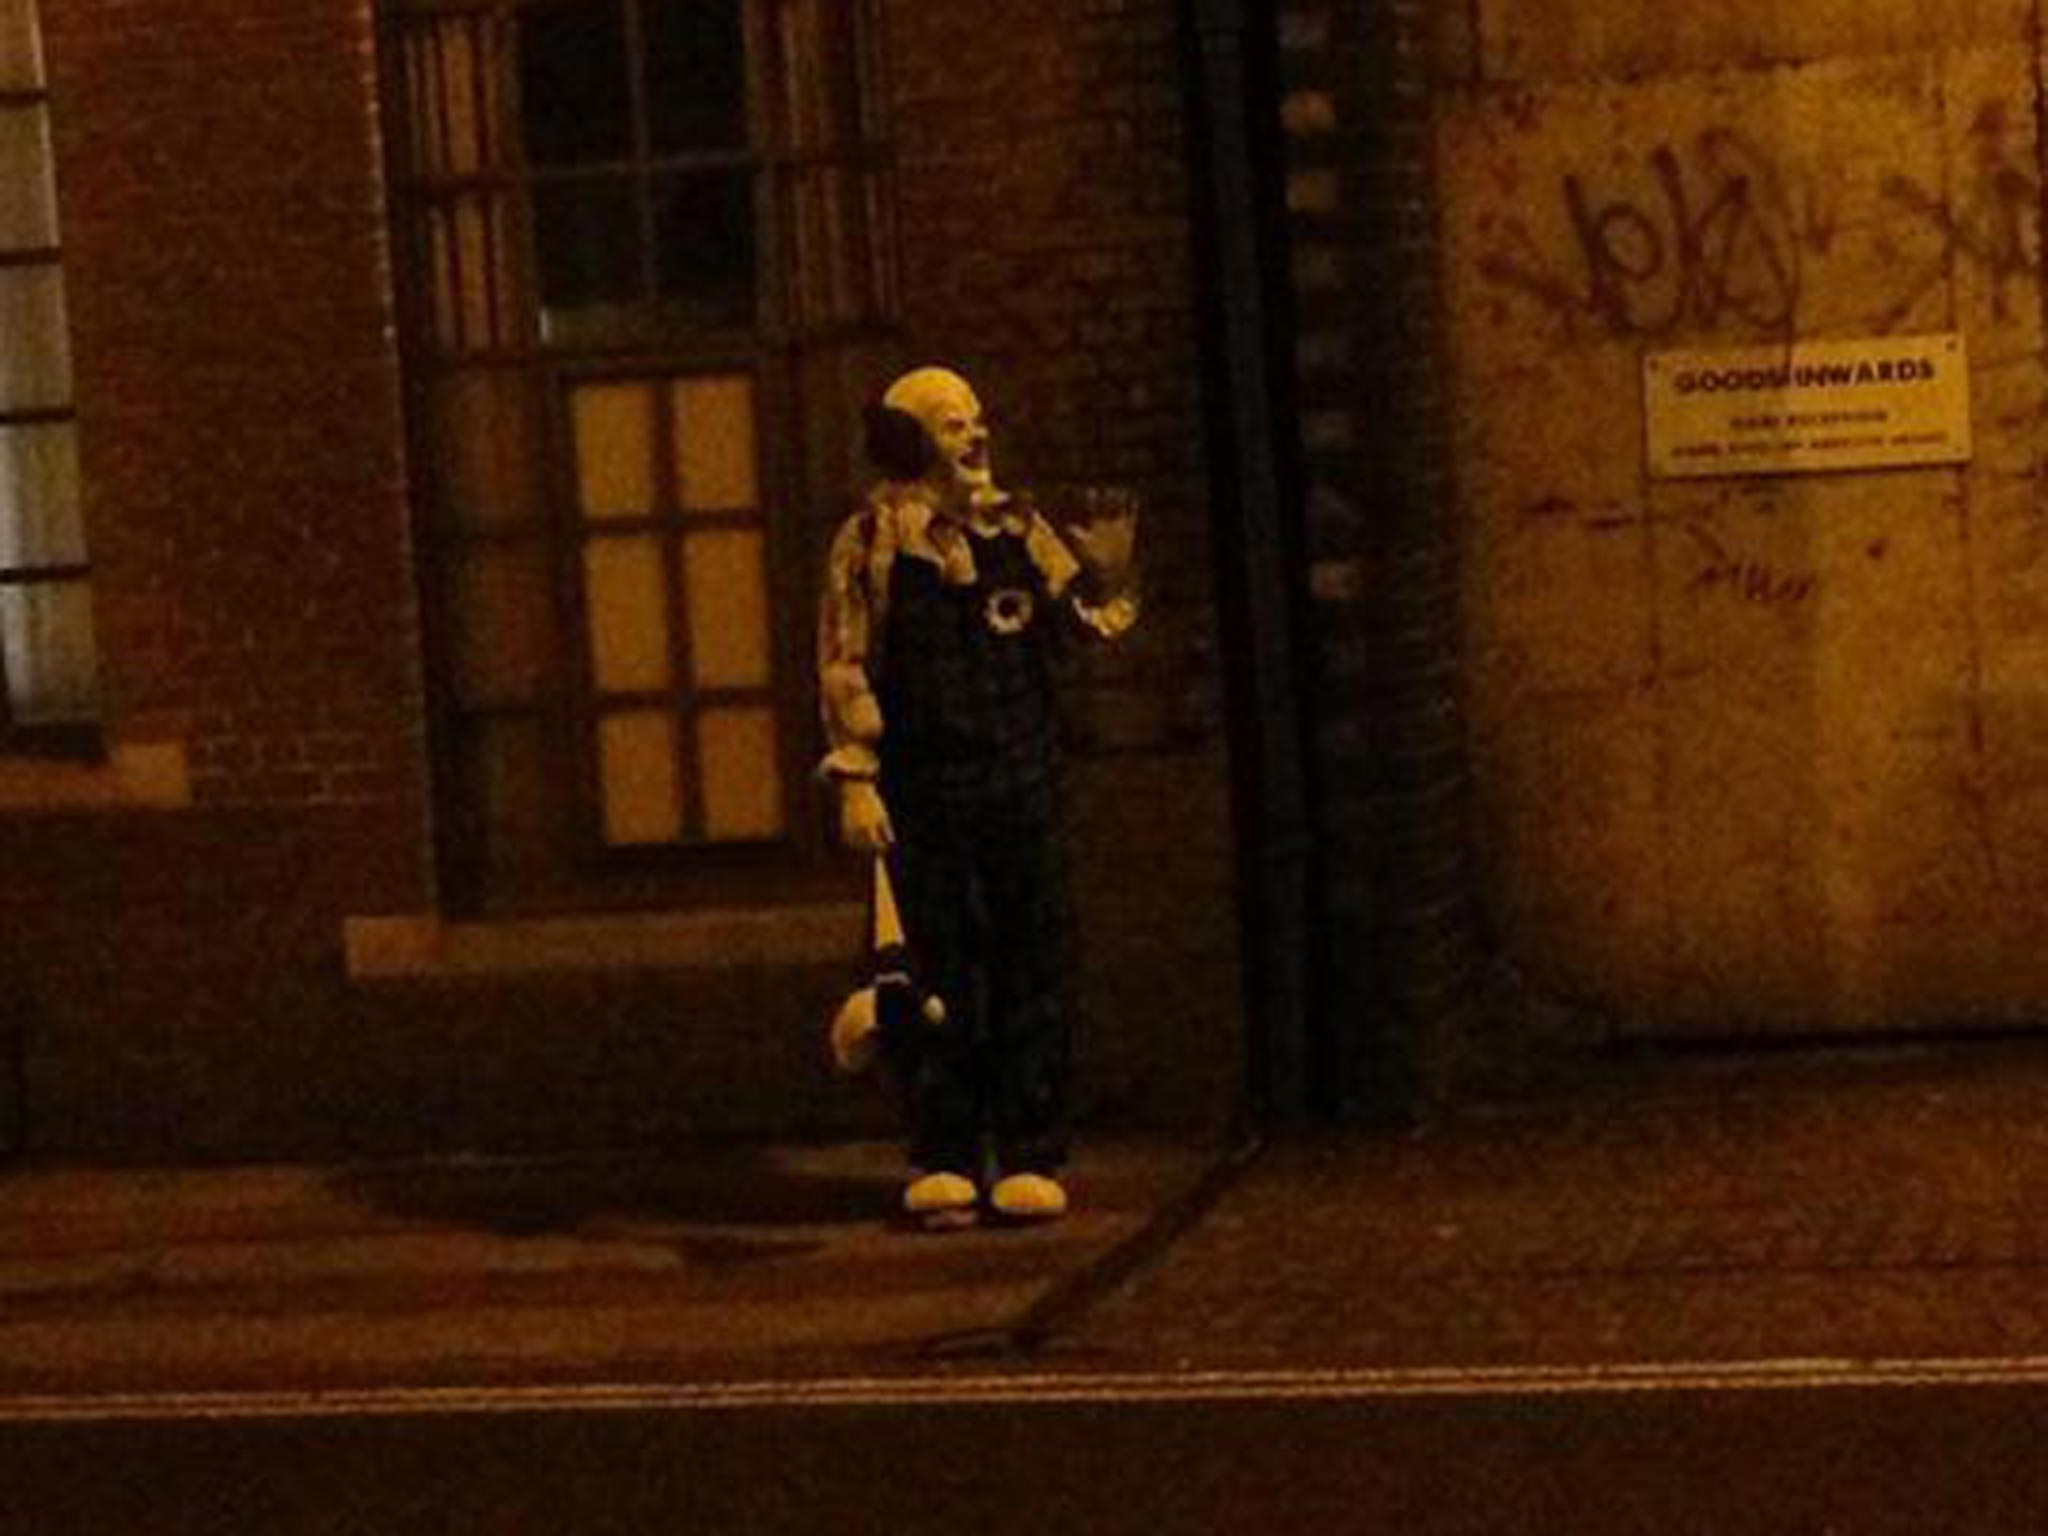 'He doesn't juggle. He doesn't twist balloons into animal shapes. He just stares': Who is the creepy clown terrifying the people of Northampton?